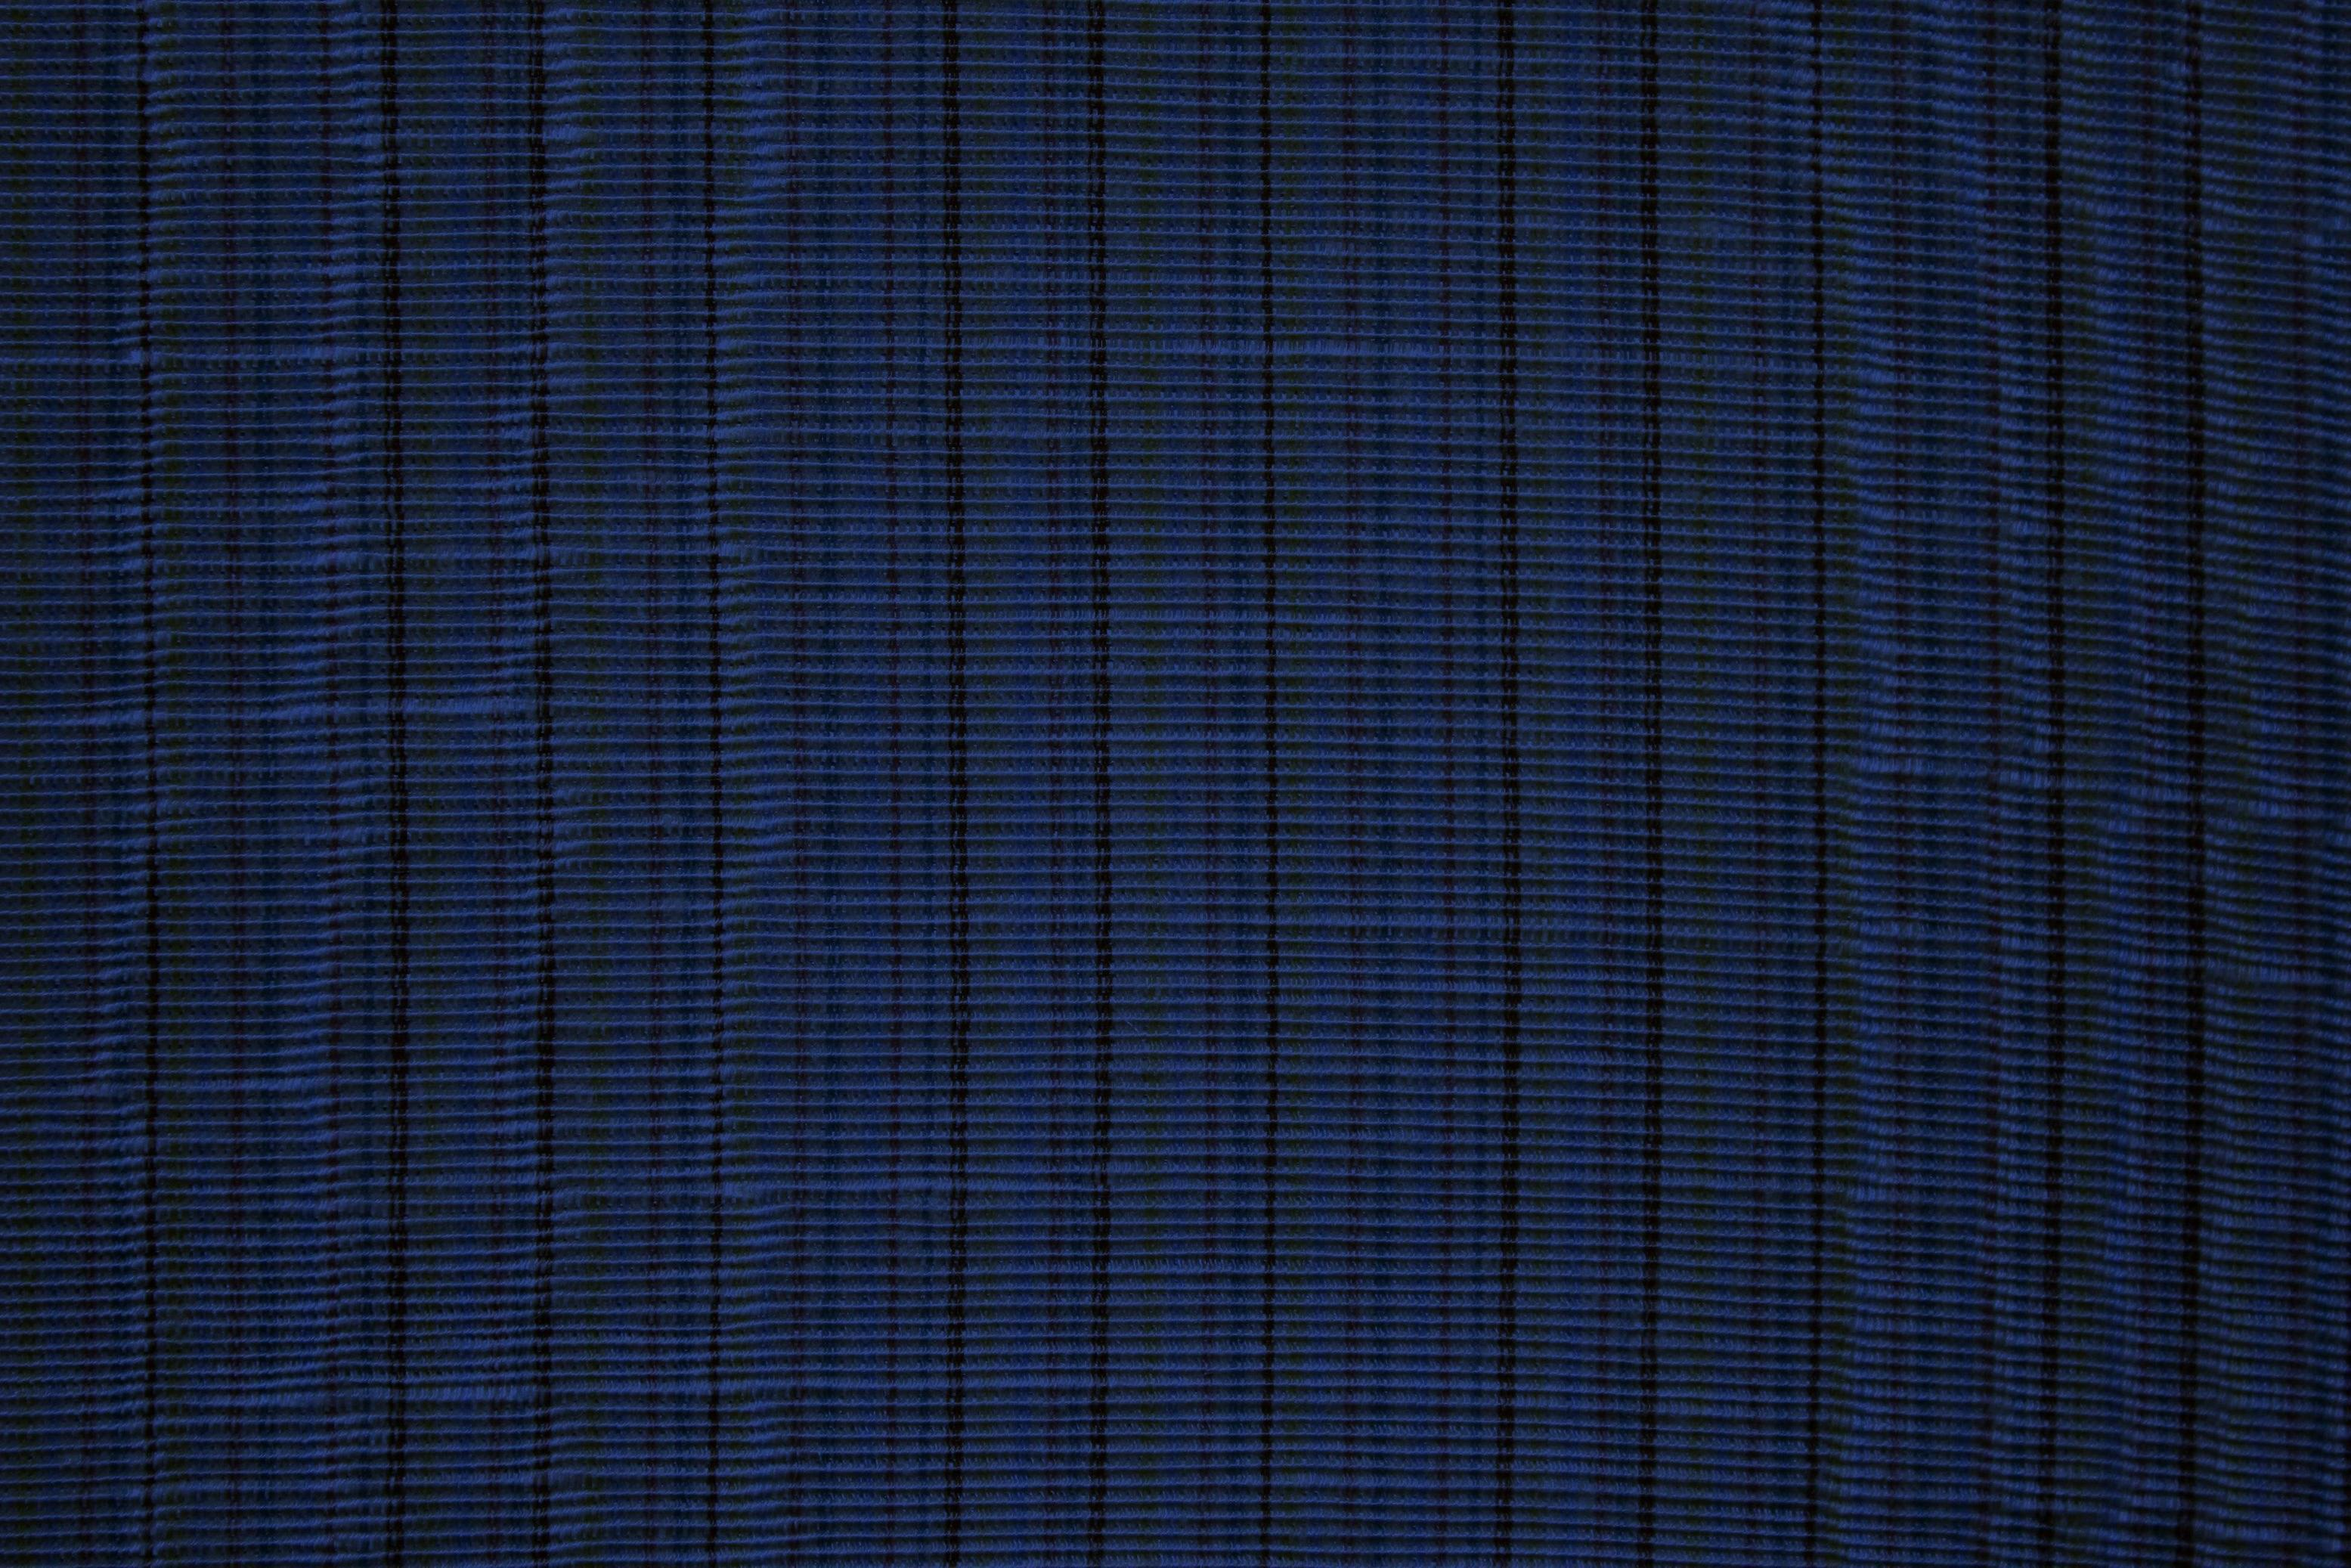 Navy Blue Wallpaper   Grasscloth Wallpaper